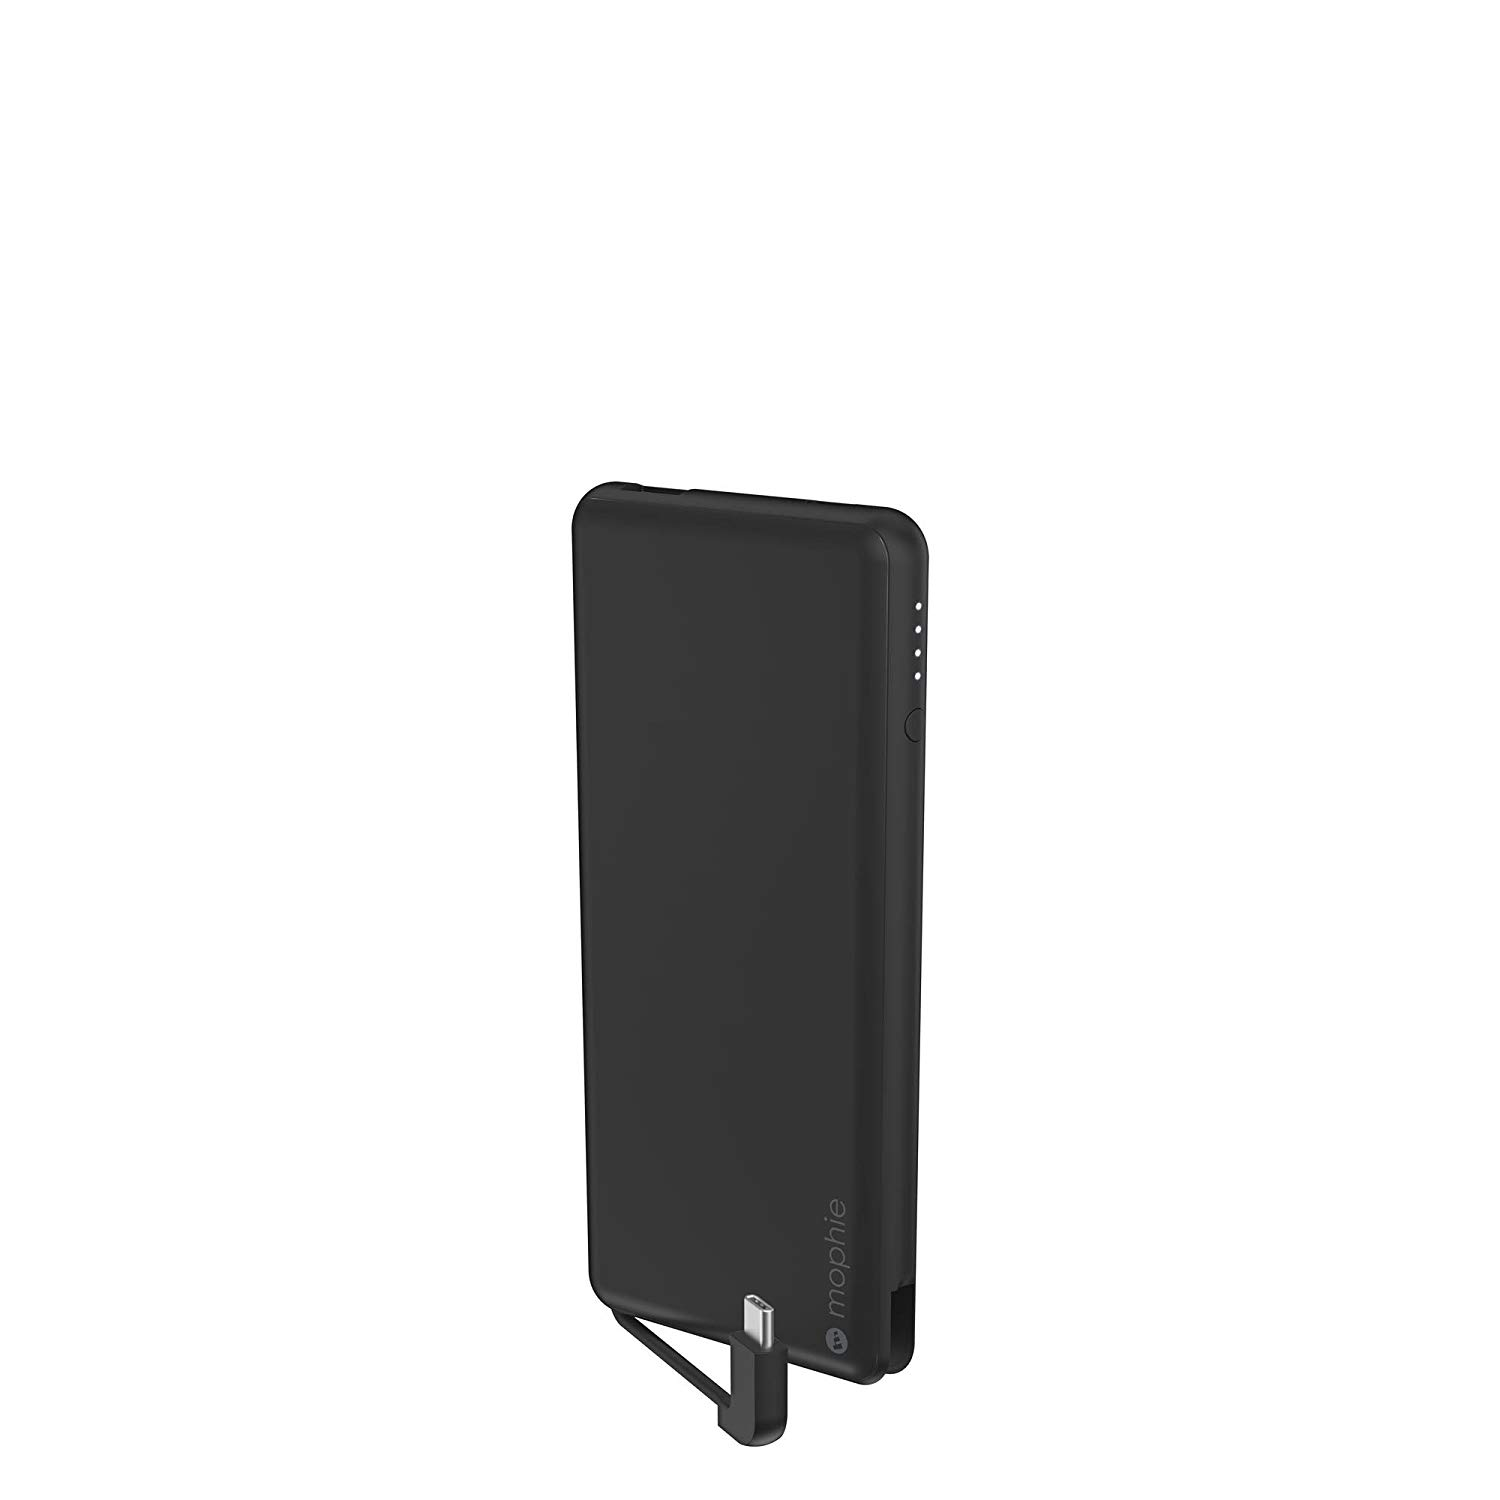 Mophie Powerstation Plus Power Bank